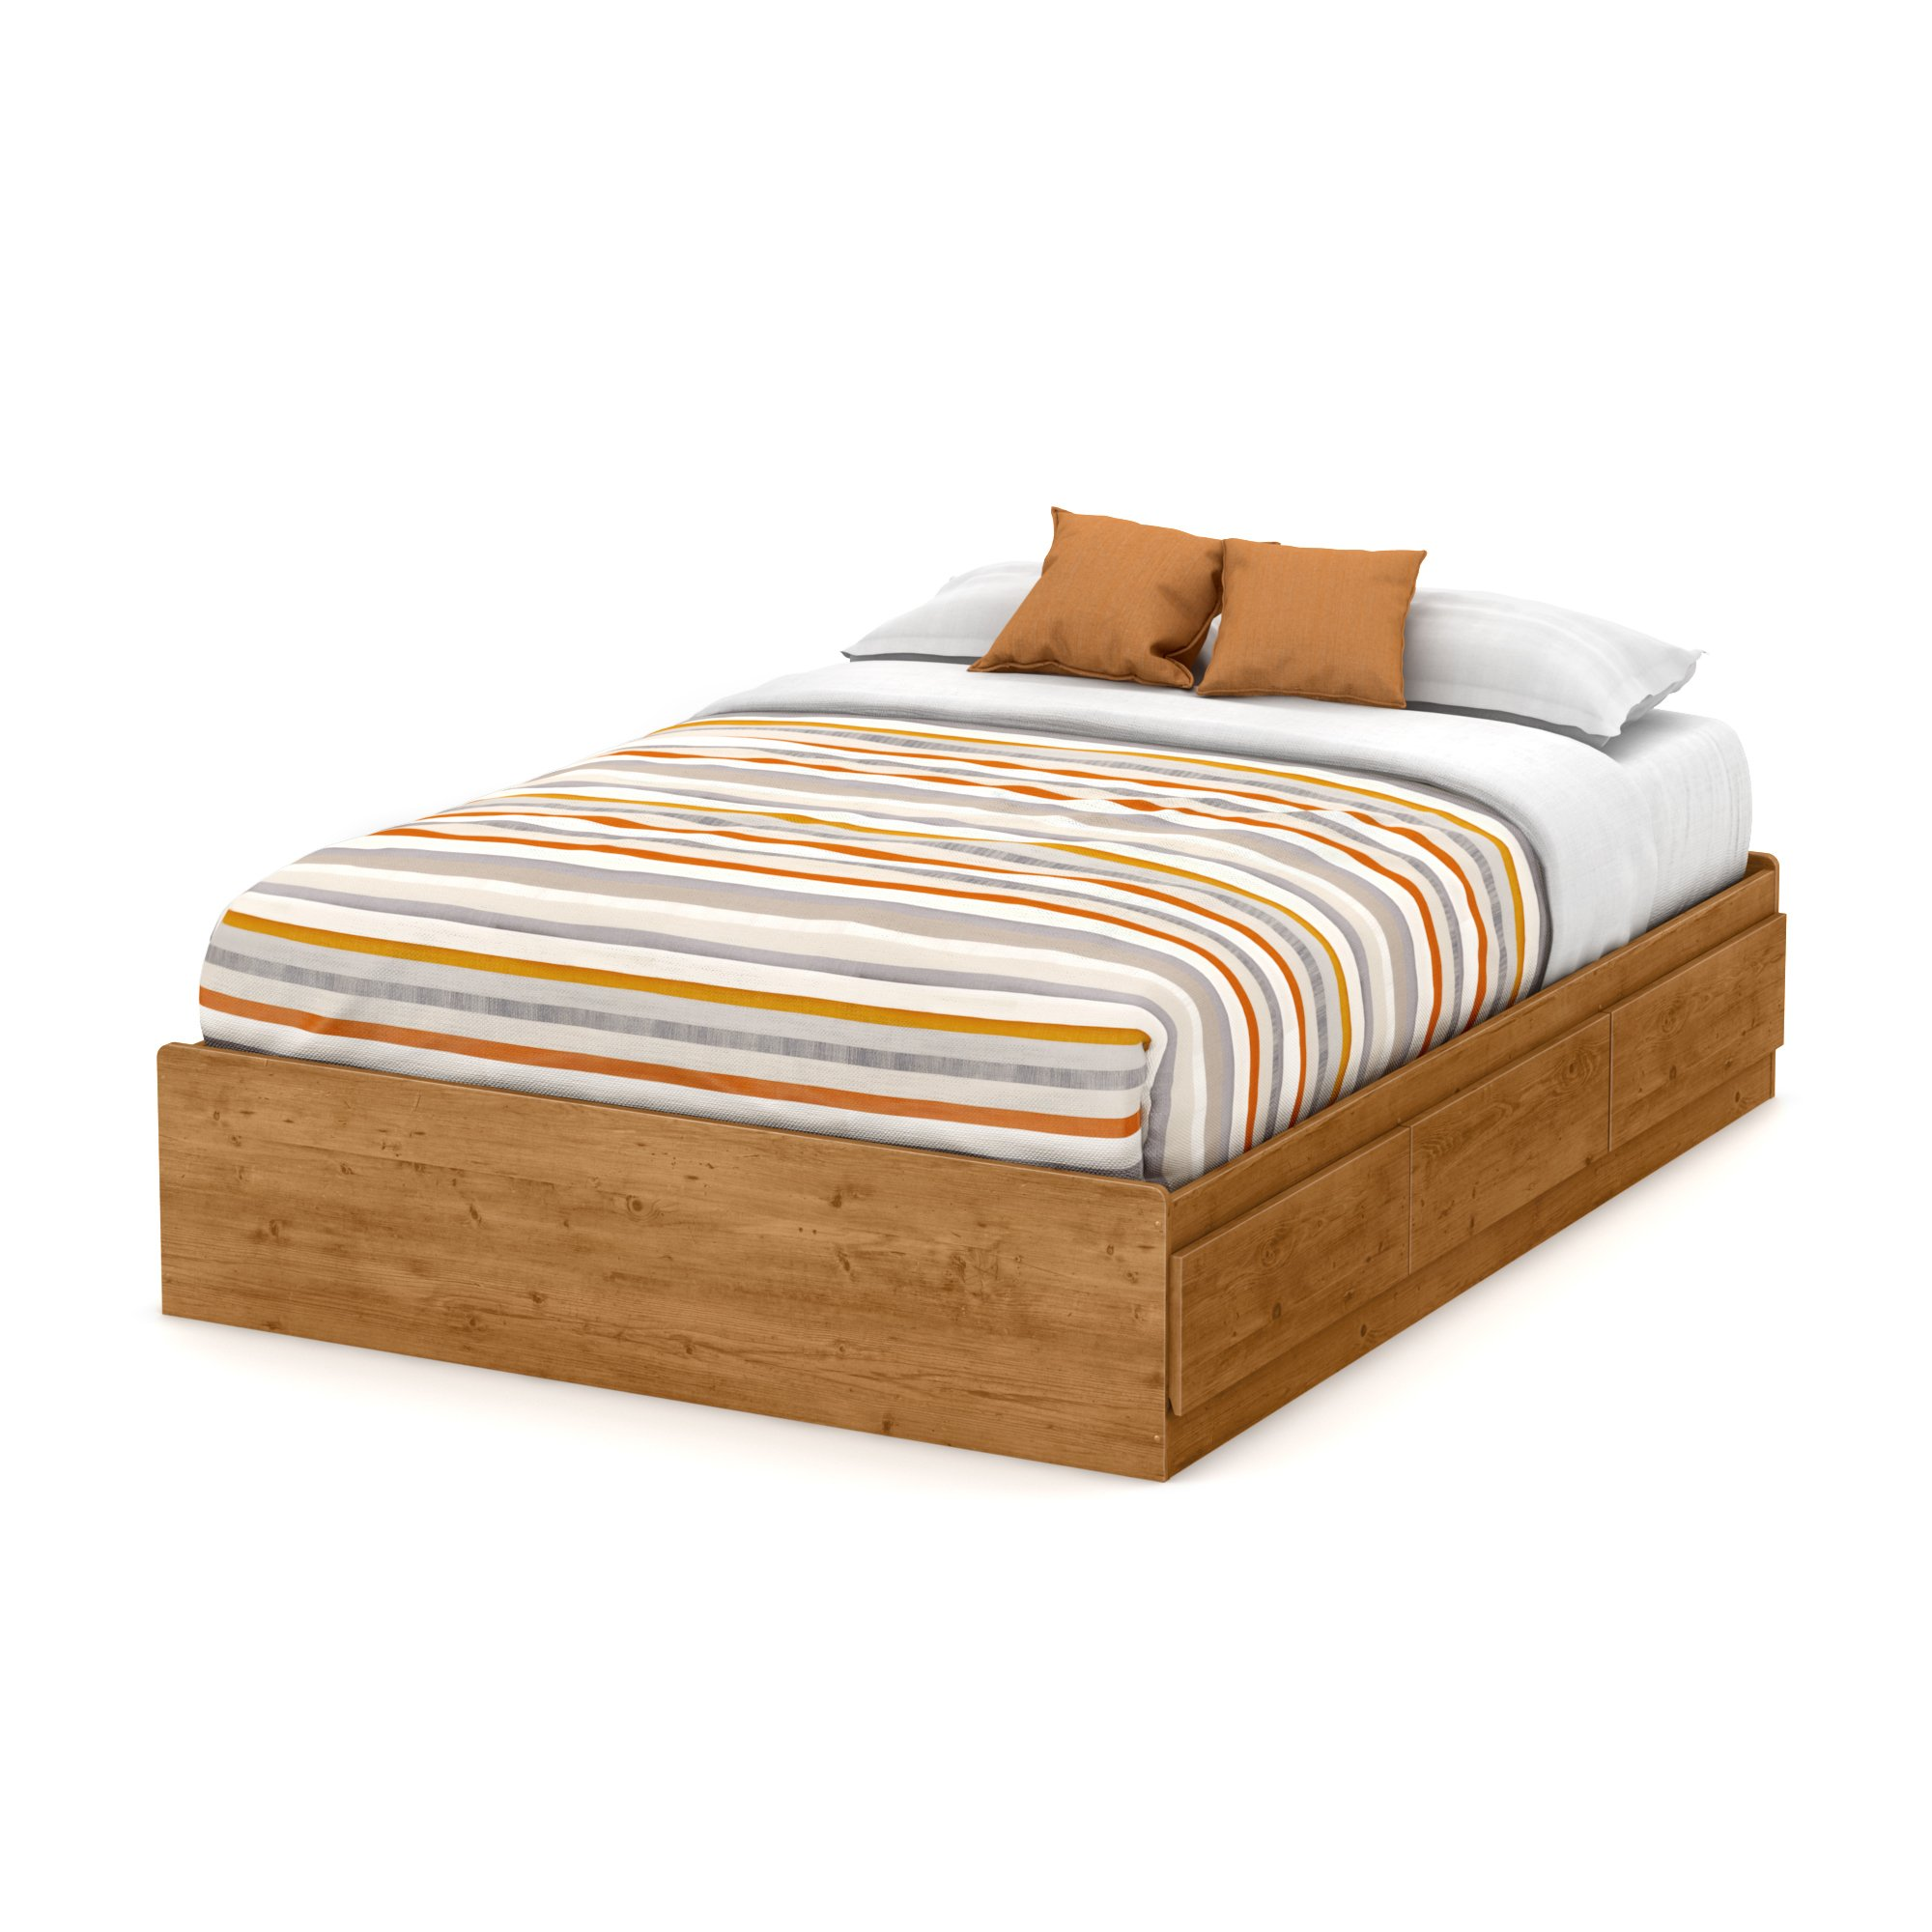 South Shore Little Treasures Full Mates Bed with 3 Drawers, 54-Inch, Country Pine